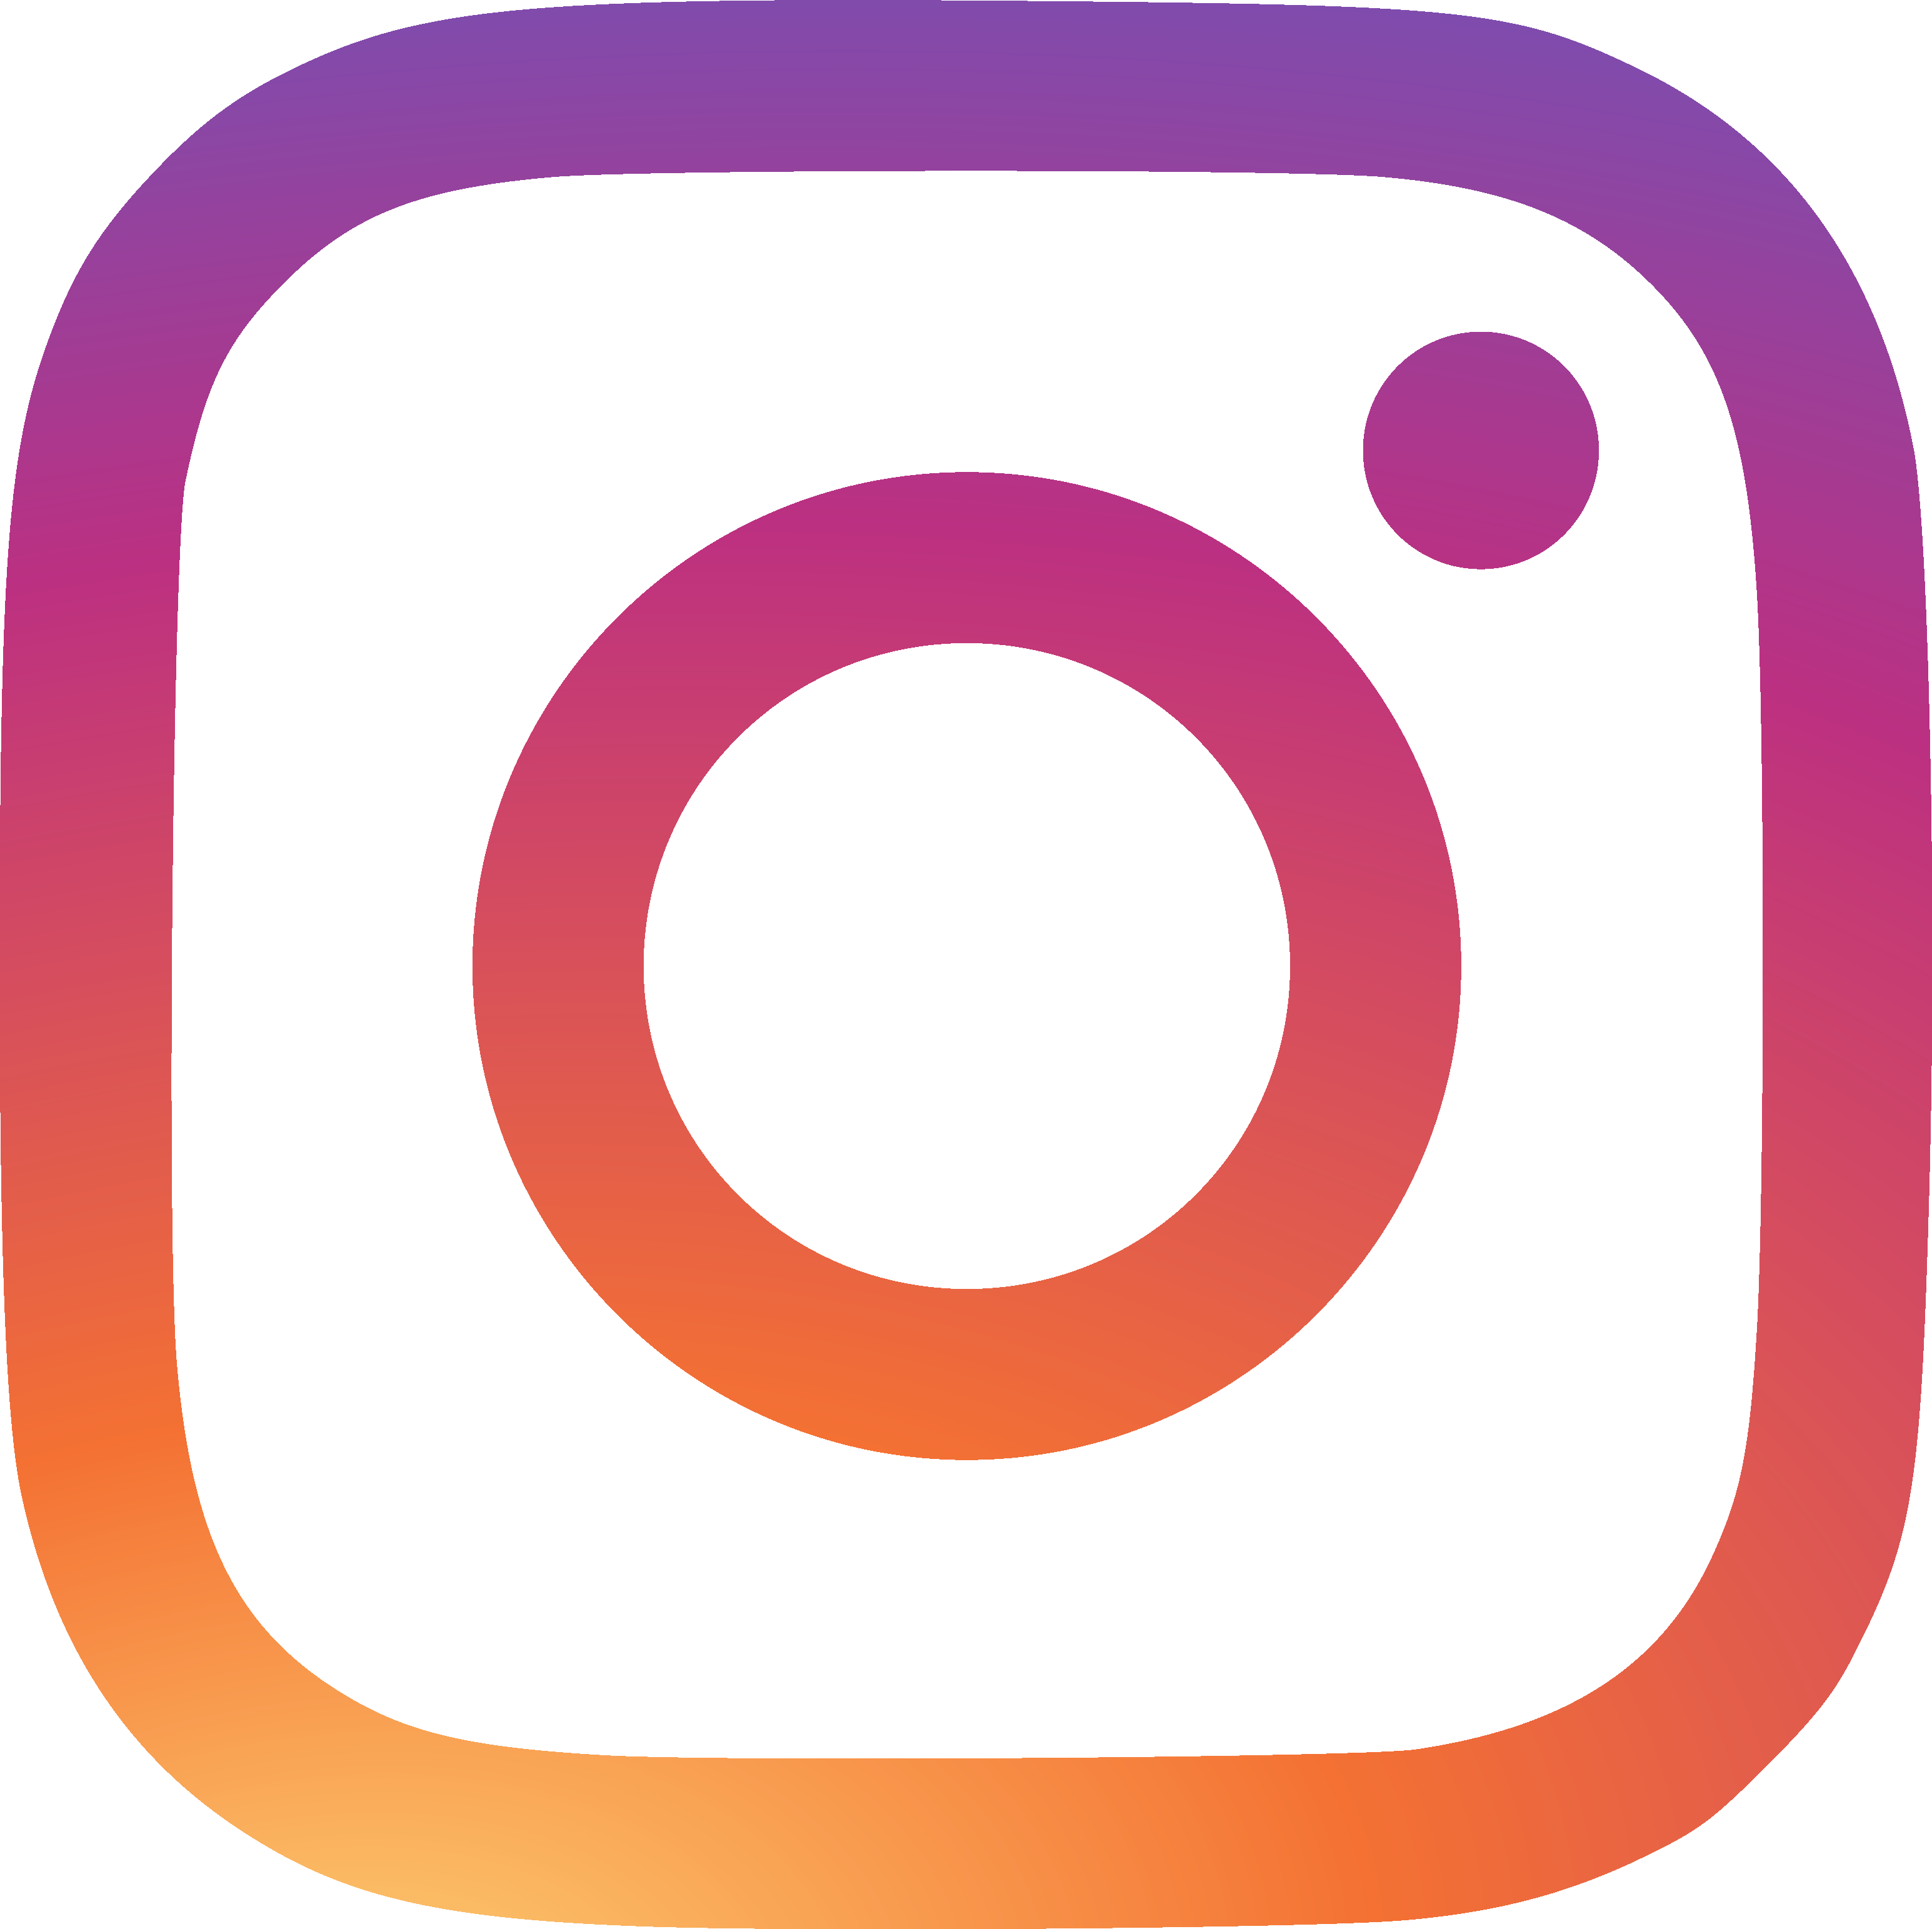 Computer Neon Instagram Icons HD Image Free PNG PNG Image